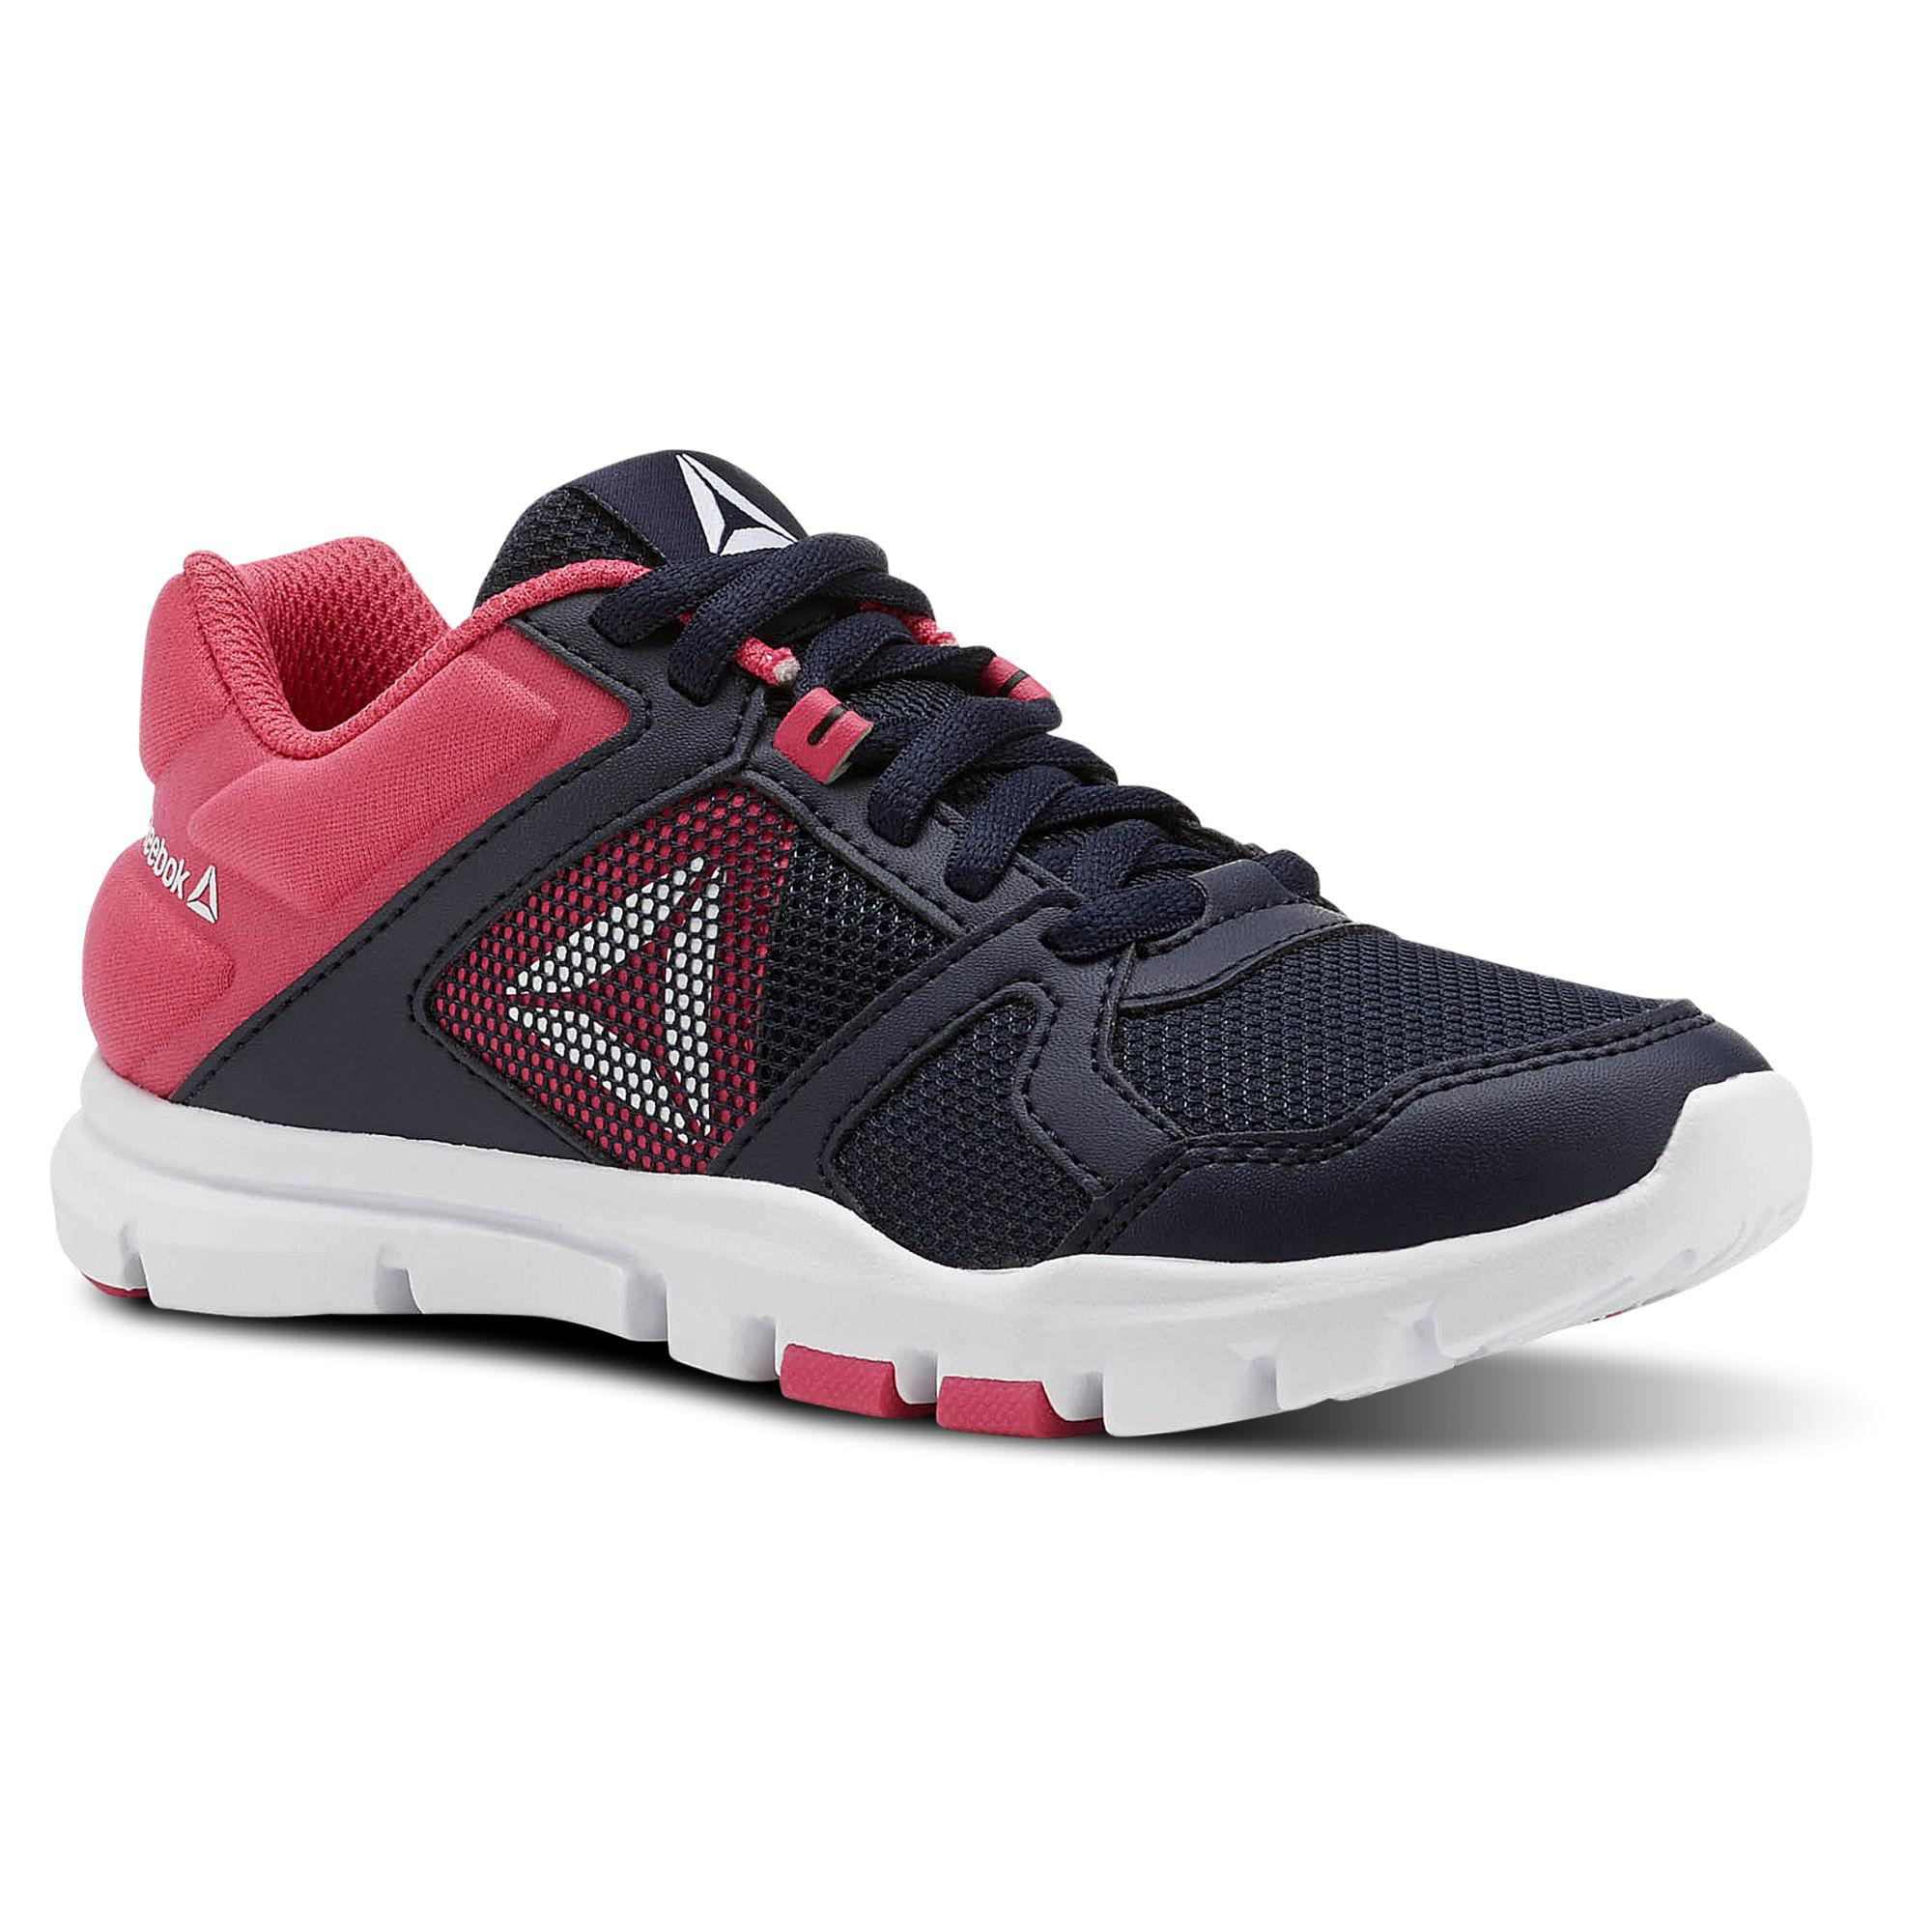 Reebok YourFlex Train 10 Fitnessschuhe Damen Online Collegiate Navy/Twisted Pink/Weiß im Online Damen Shop von SportScheck kaufen Gute Qualität beliebte Schuhe d98d8c